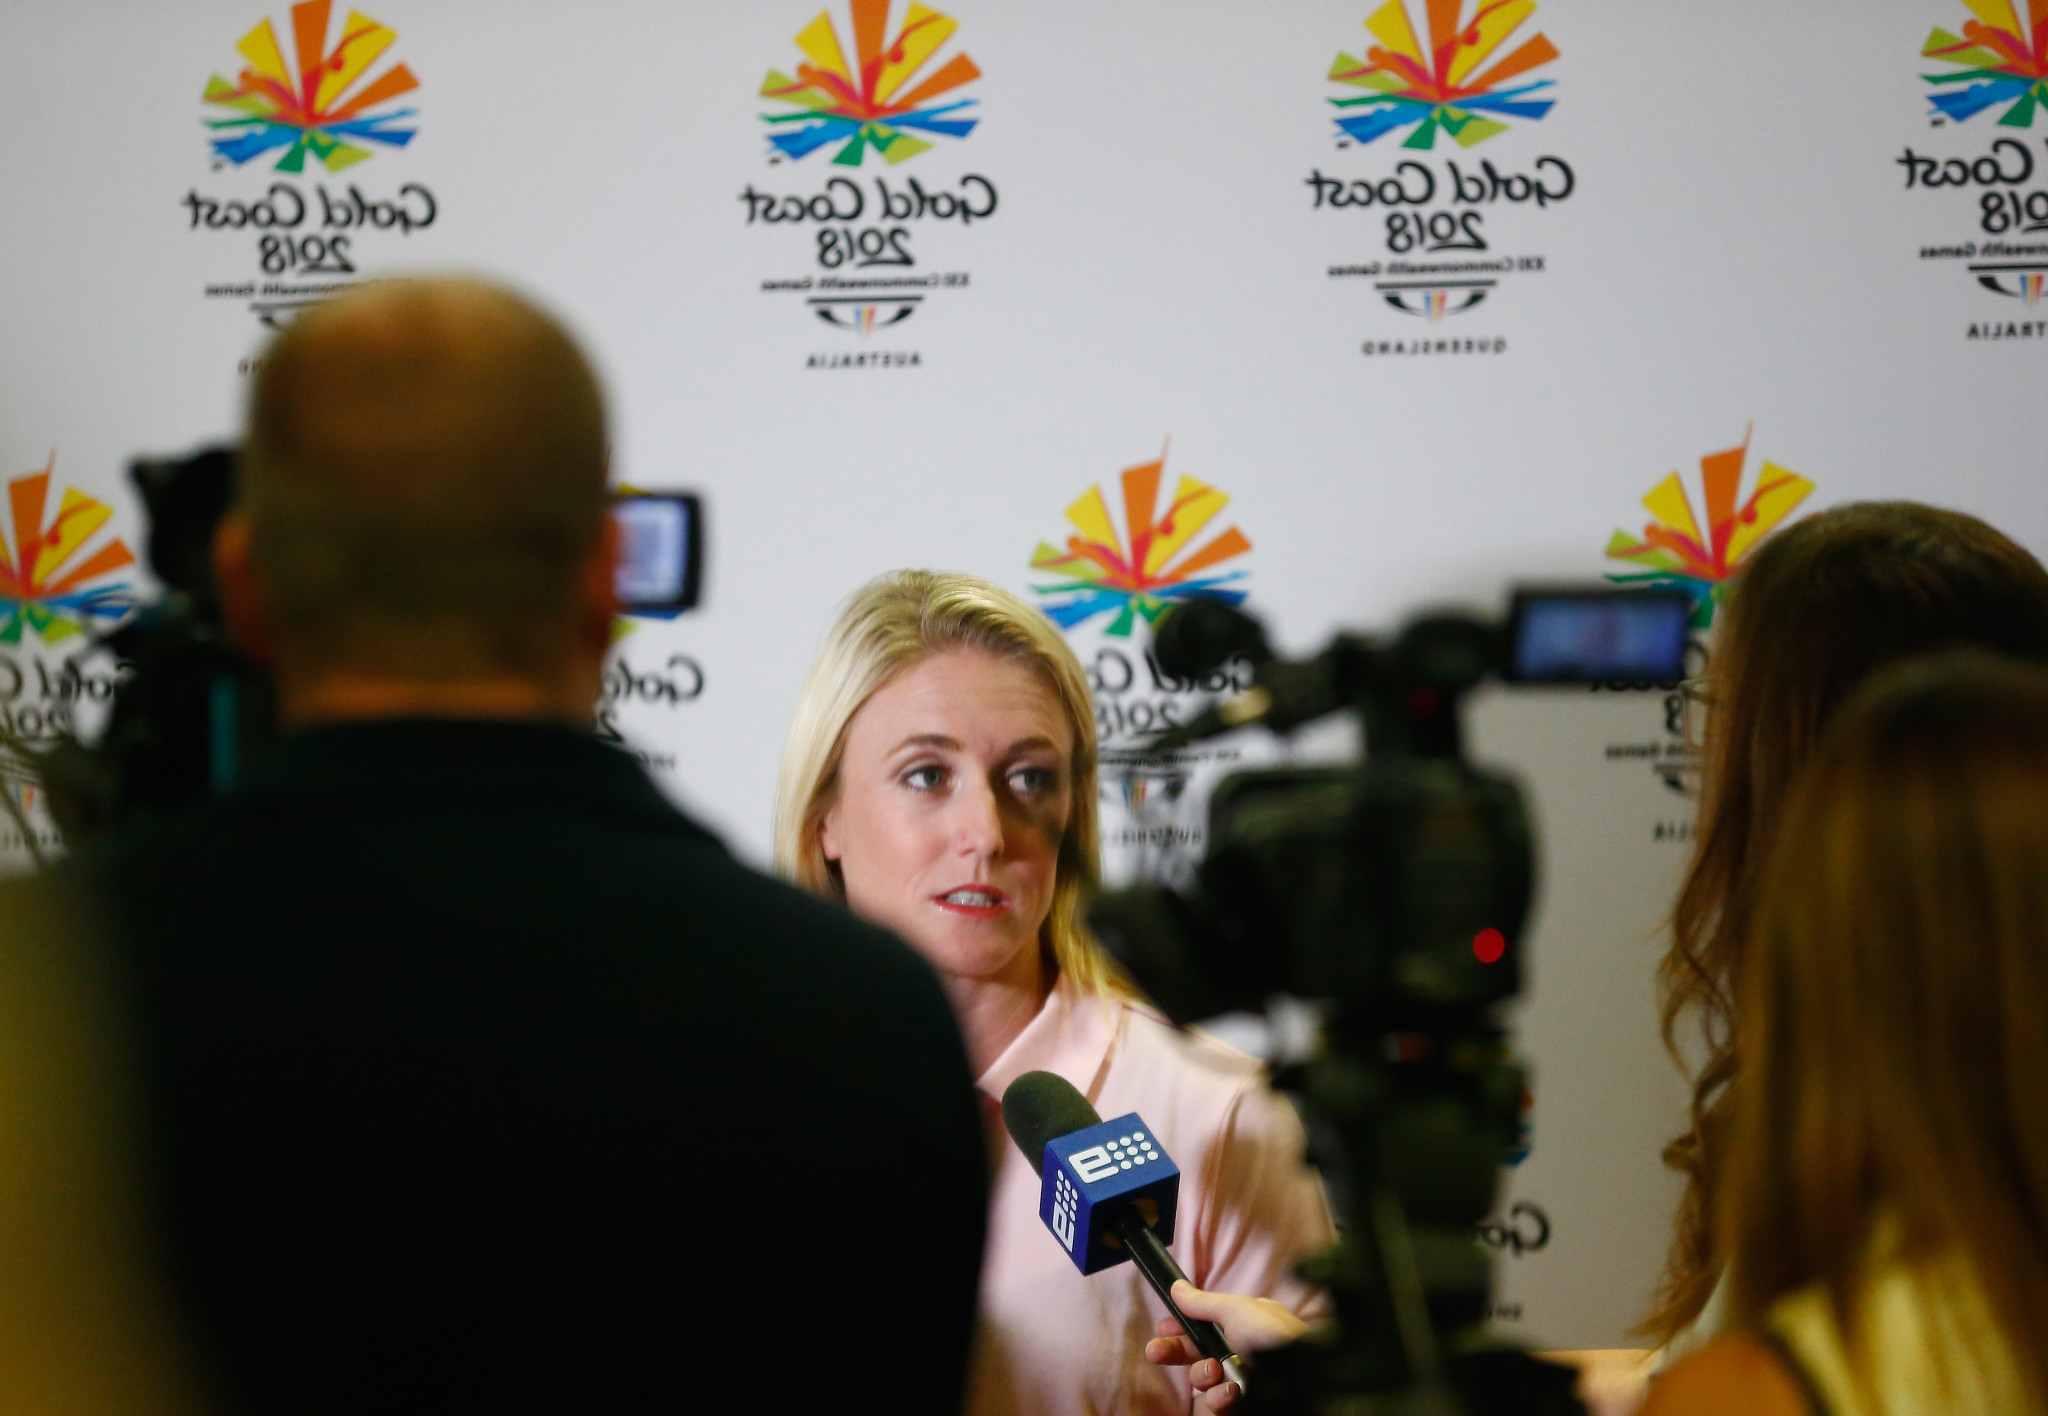 Gold Coast 2018 remind media of news access rules prior to Commonwealth Games